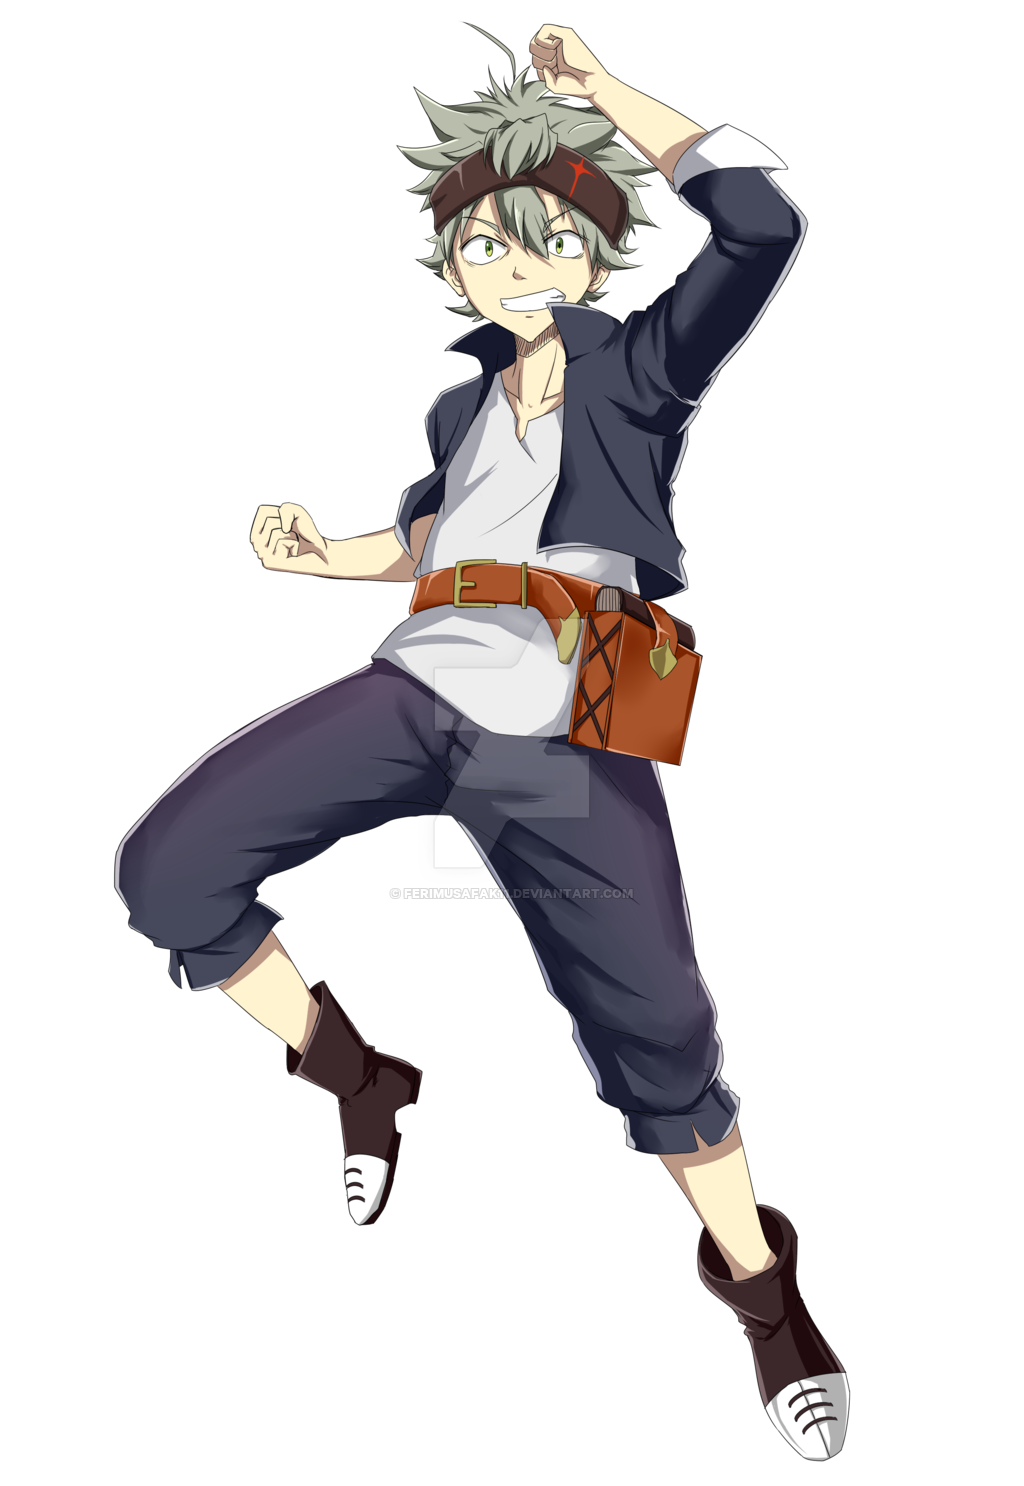 Asta Black Clover by ferimusafak11 on DeviantArt.